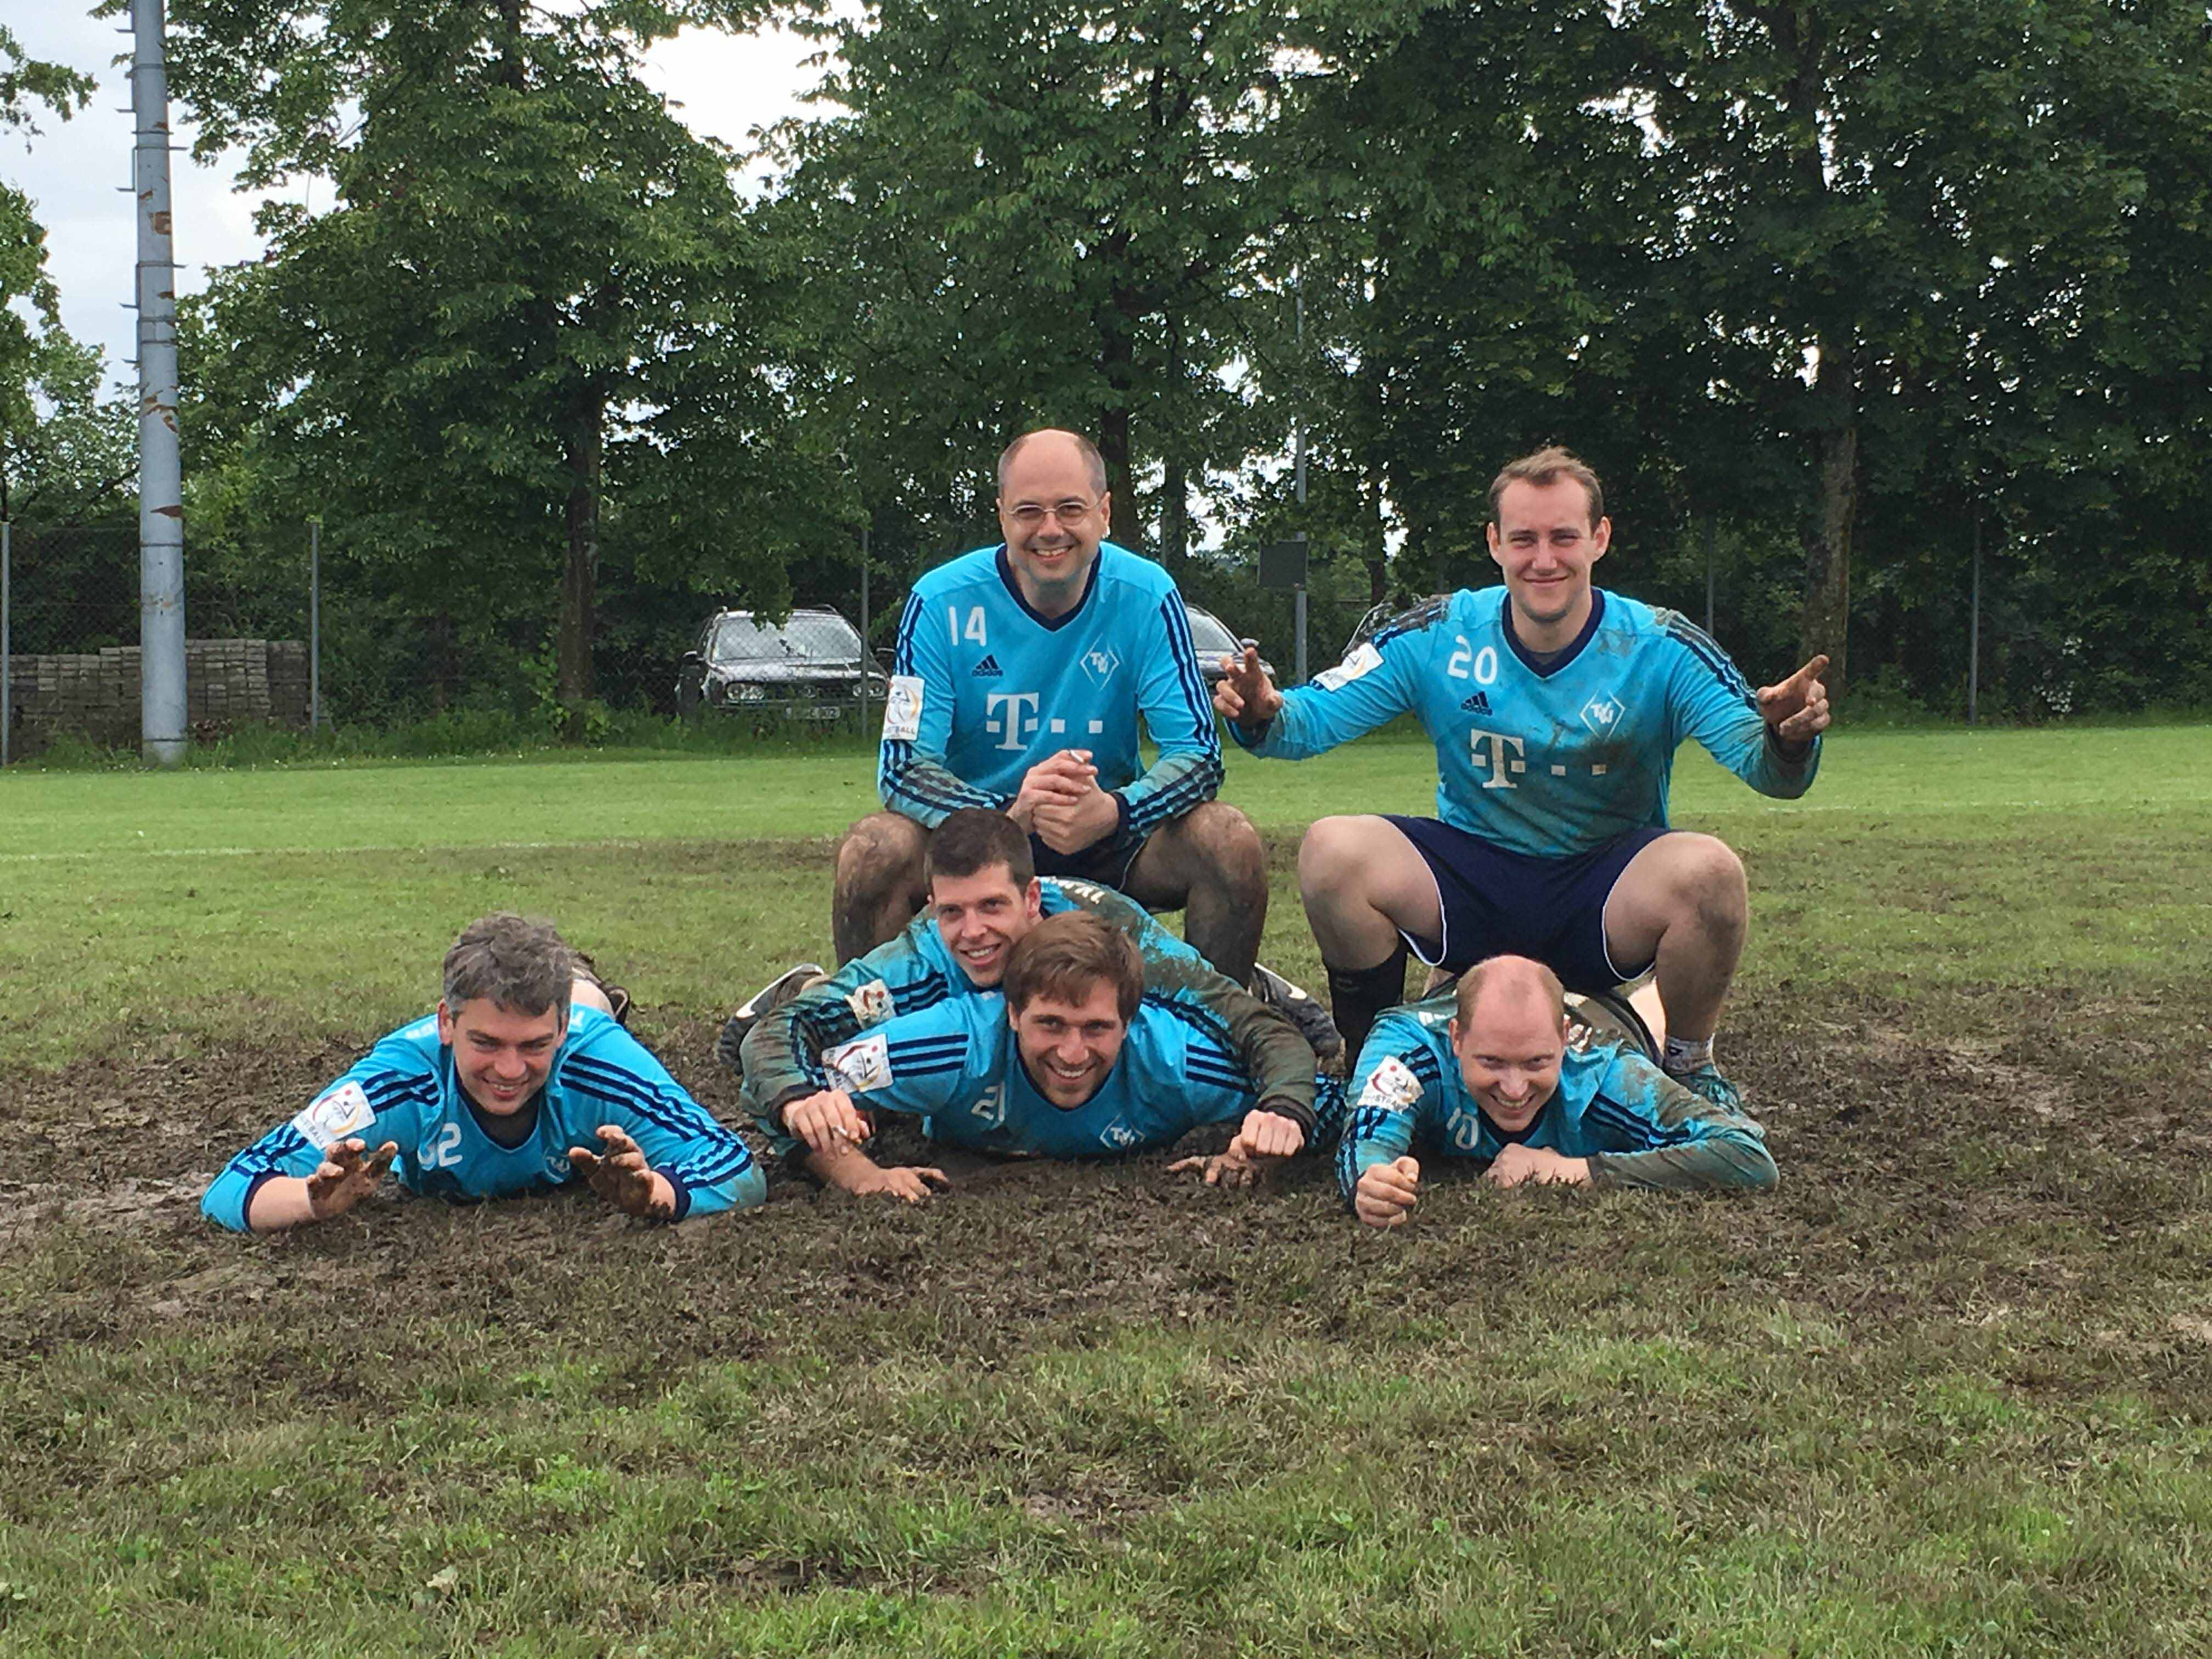 TVWaldrennach3 Faustball 1